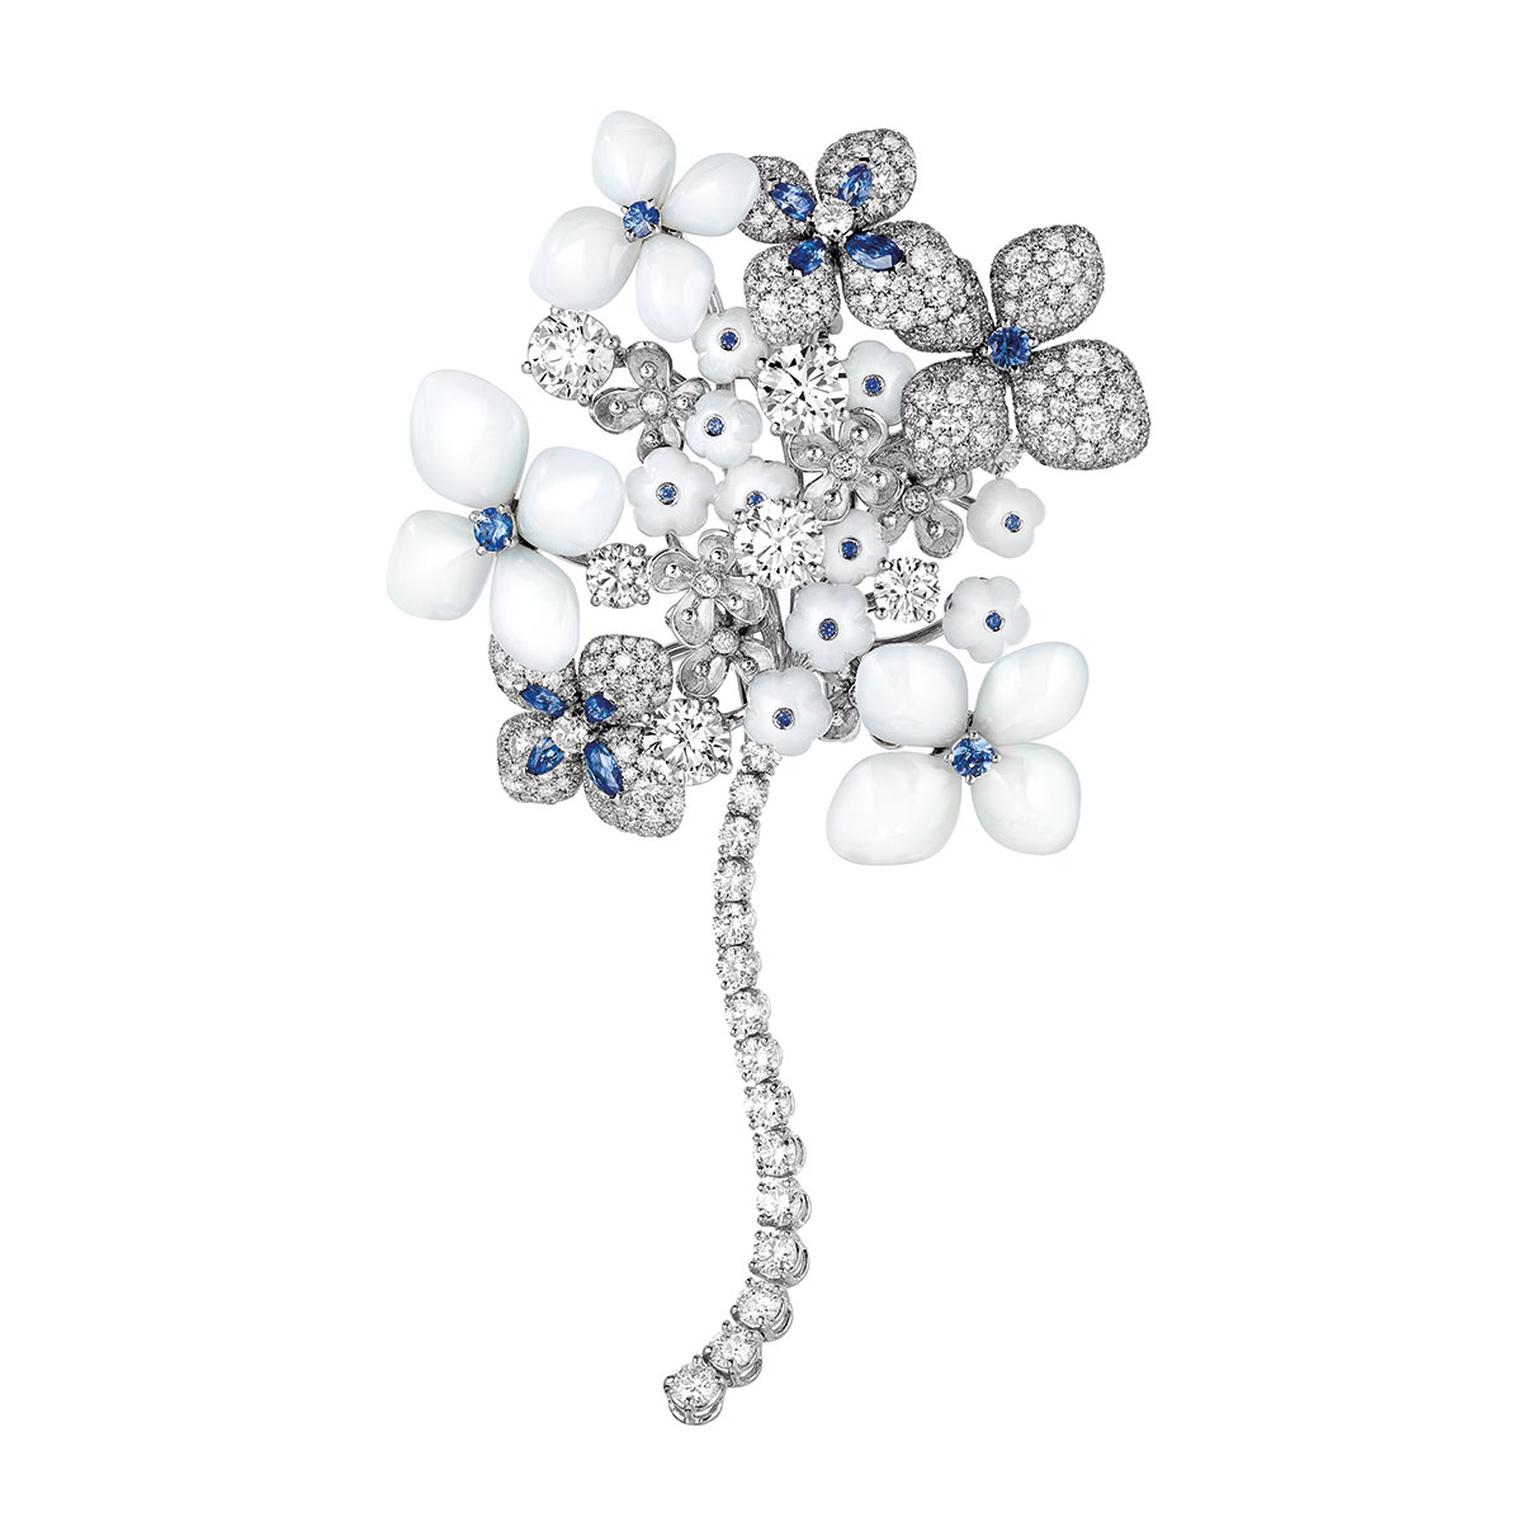 Chaumet white gold, sapphire, chalcedony and diamond brooch